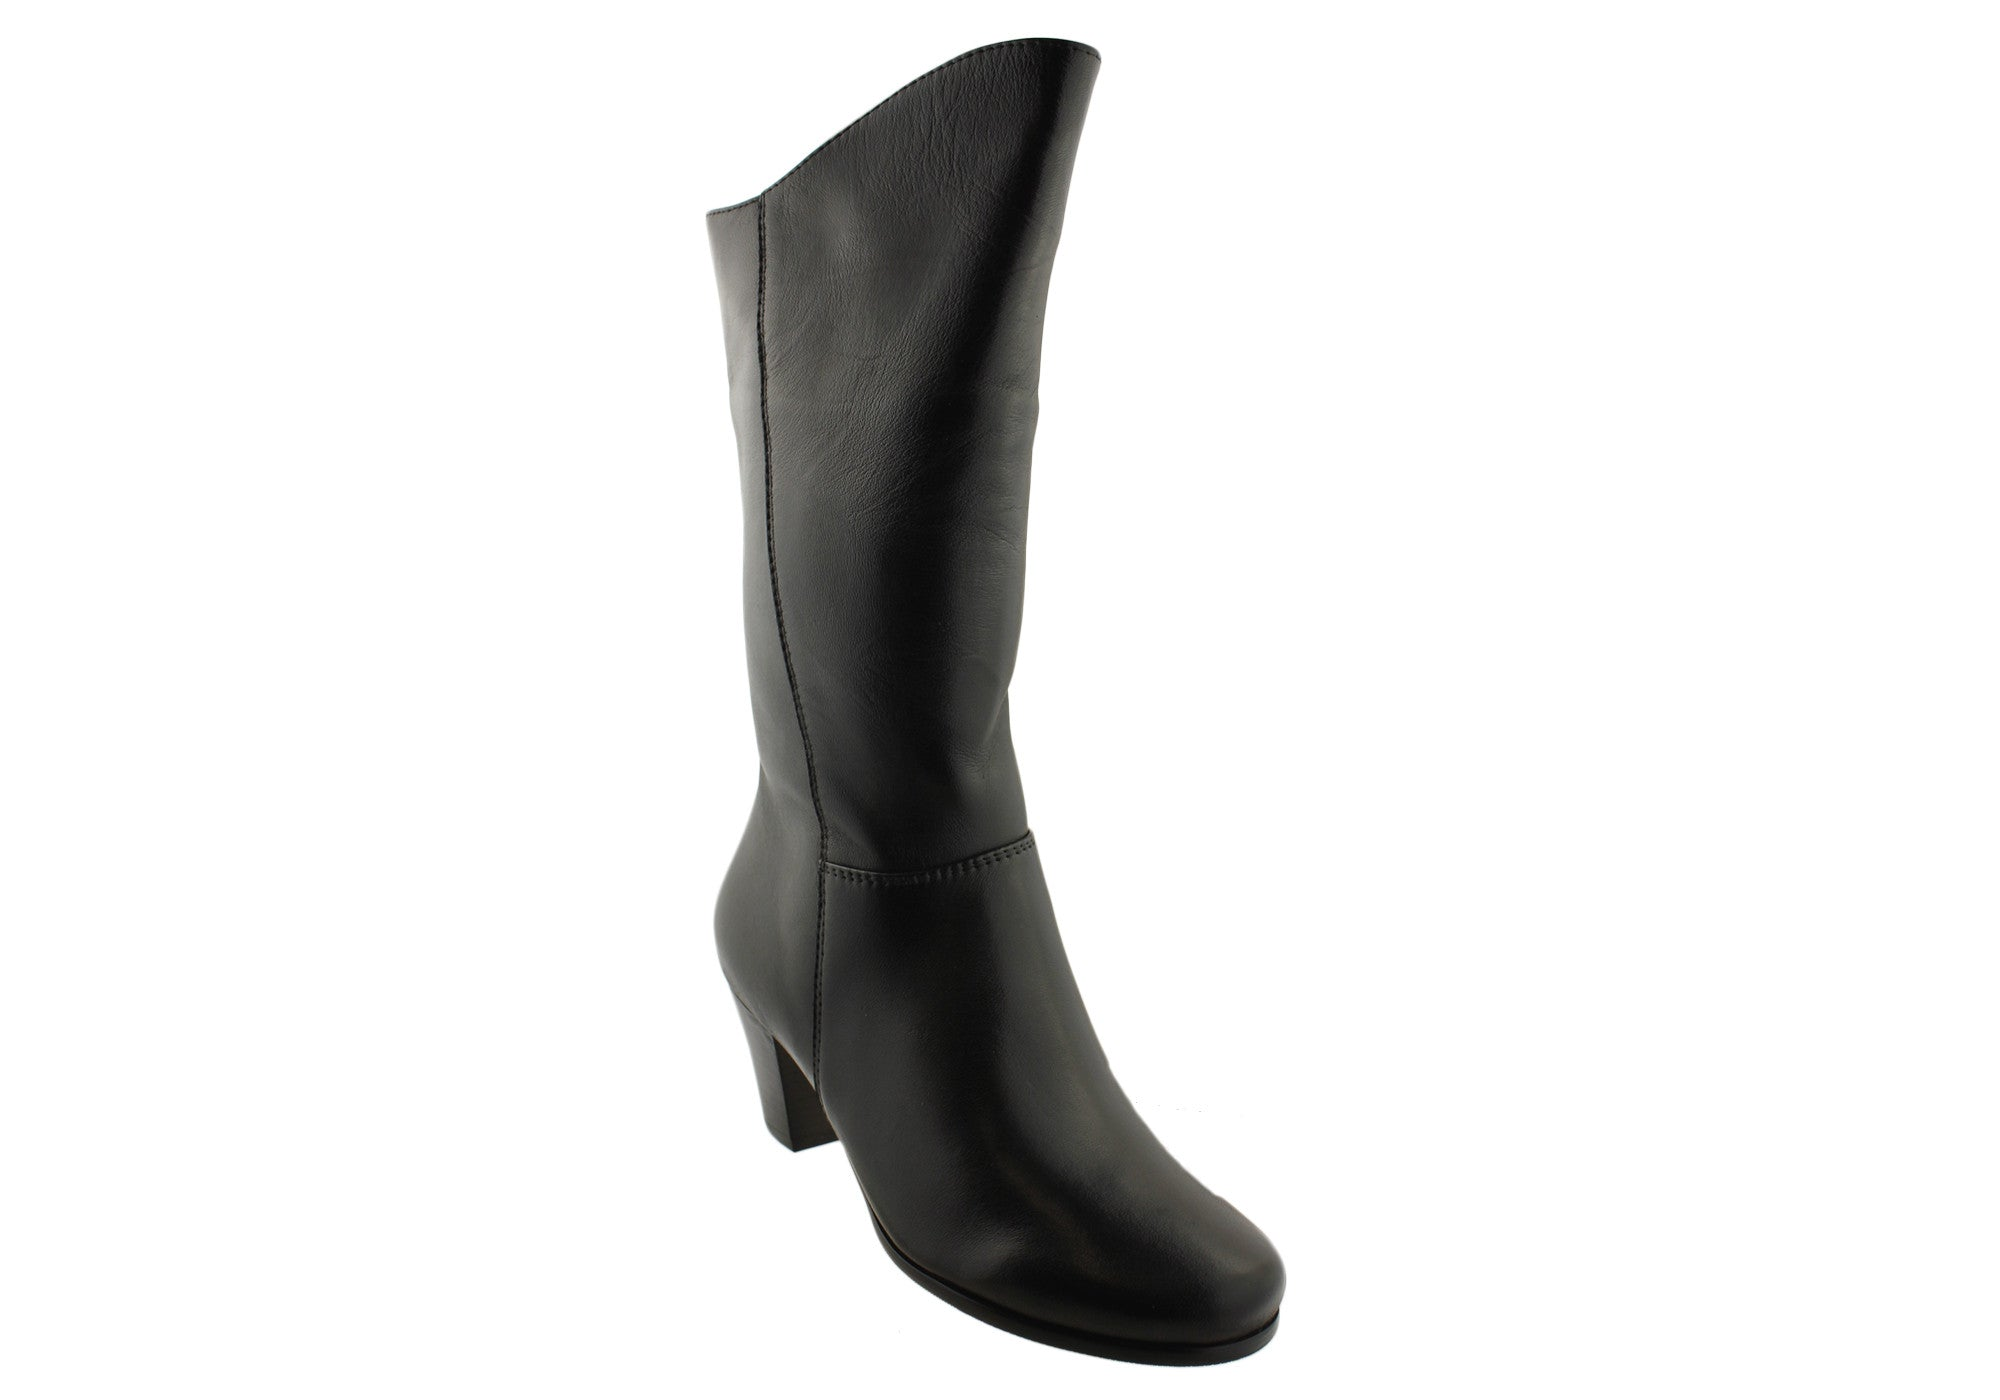 Magnini Rissa Womens Soft Leather Boots